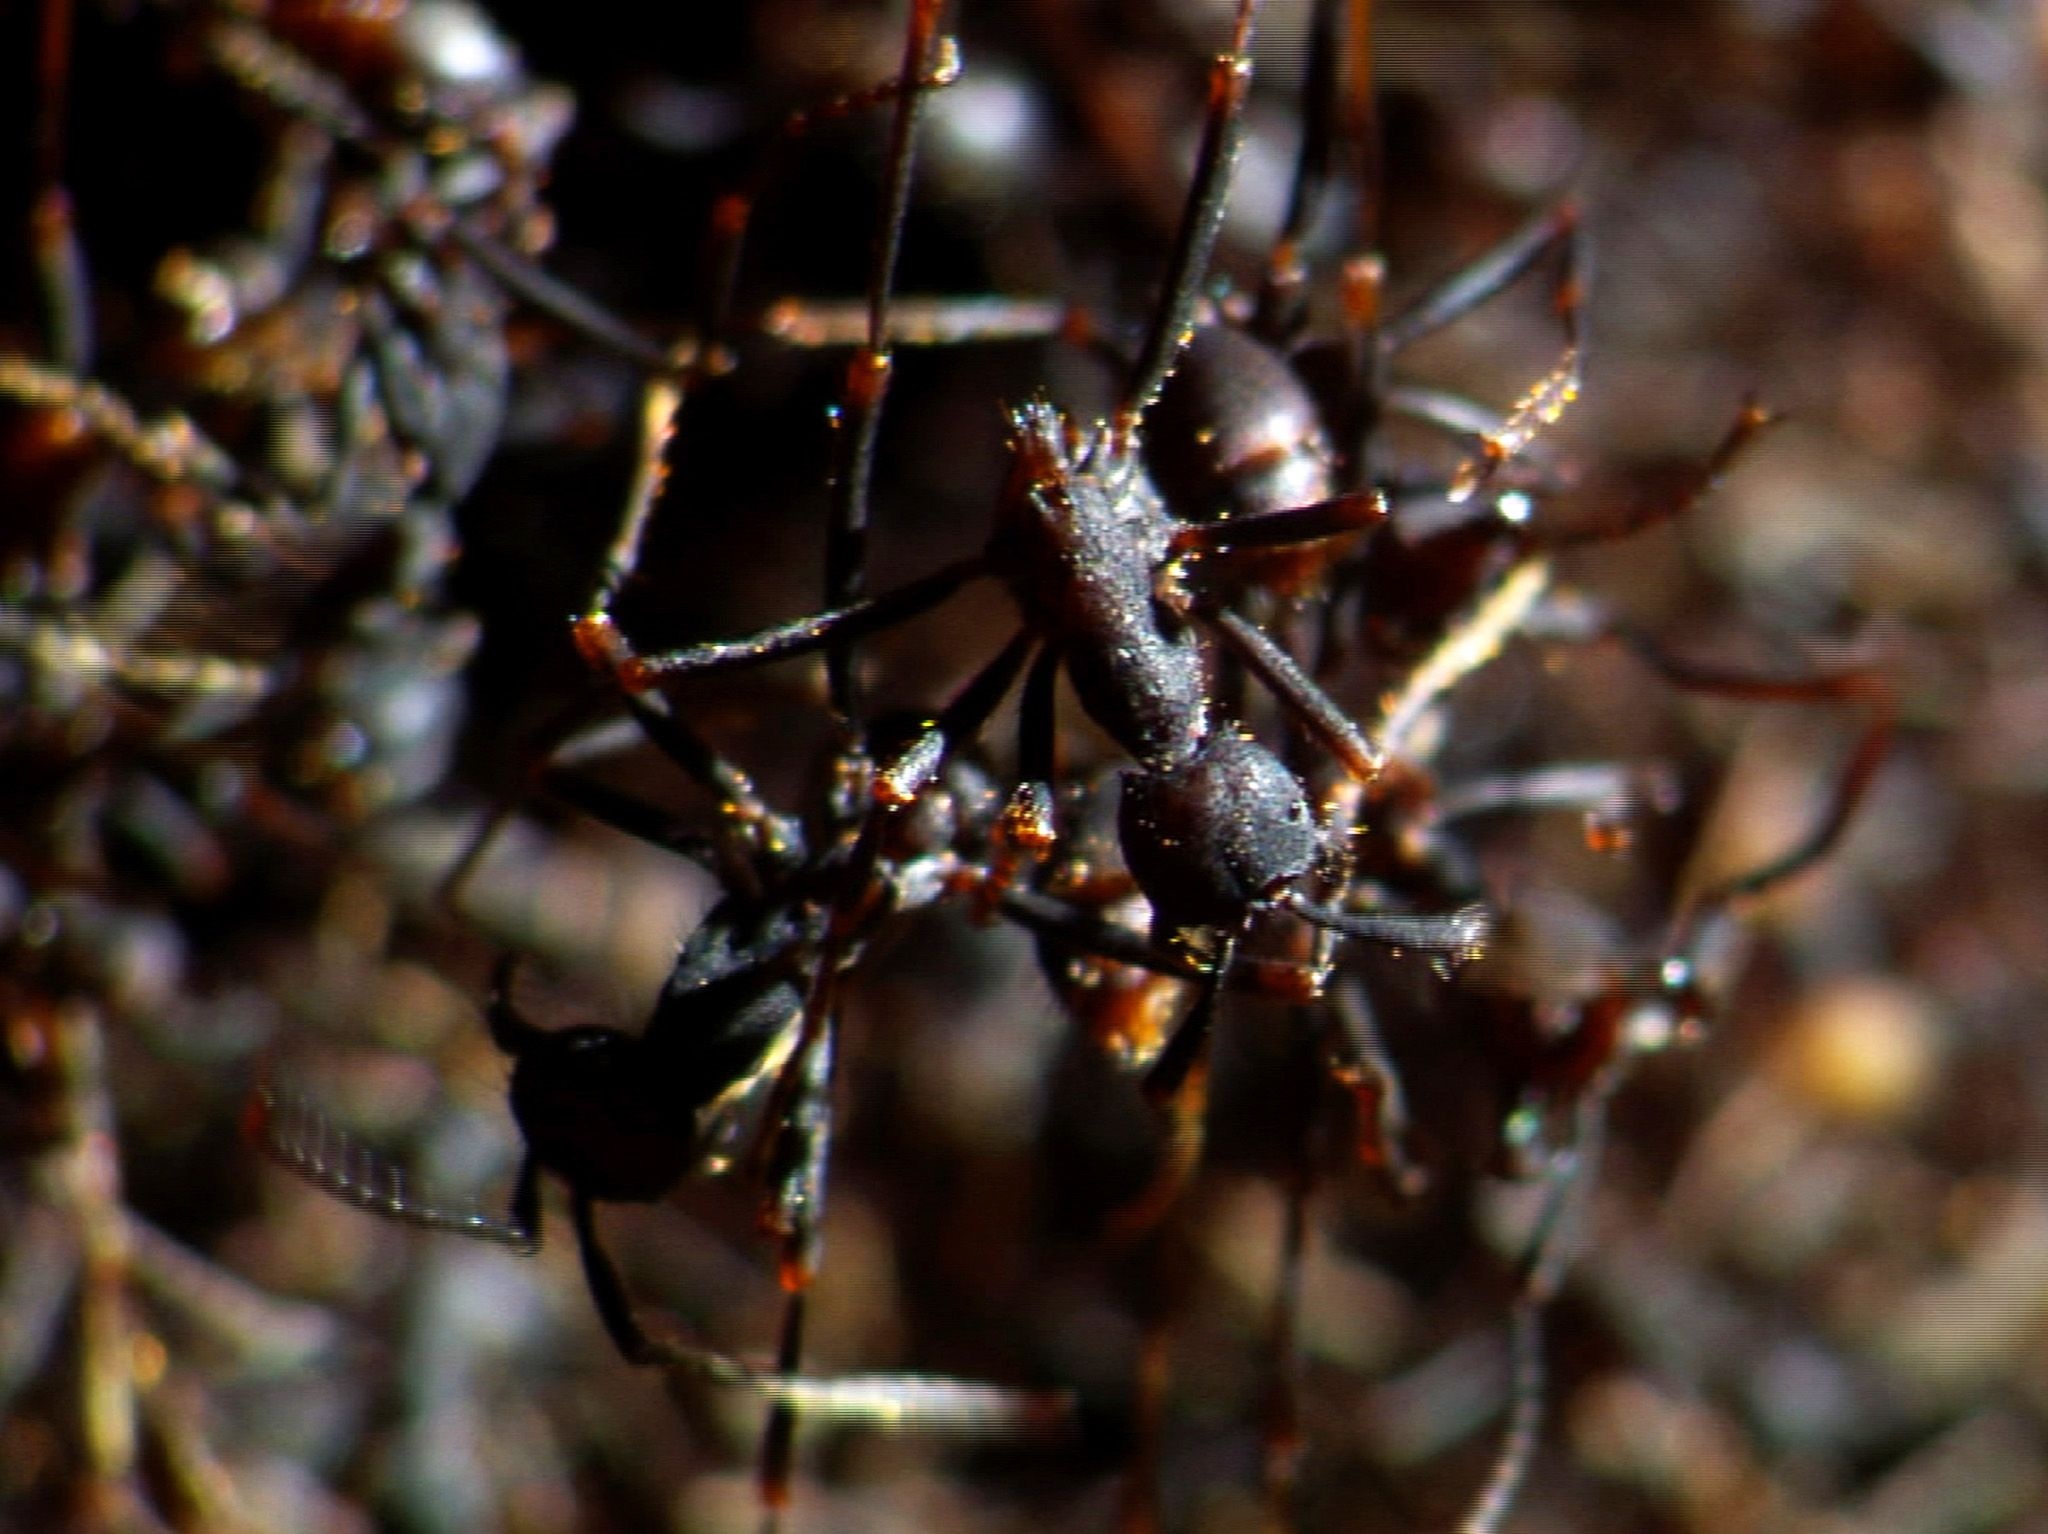 Costa Rica: The colonies of Eciton burchelli, an army ant, range in size from 300,000 to... [Photo of the day - December 2019]